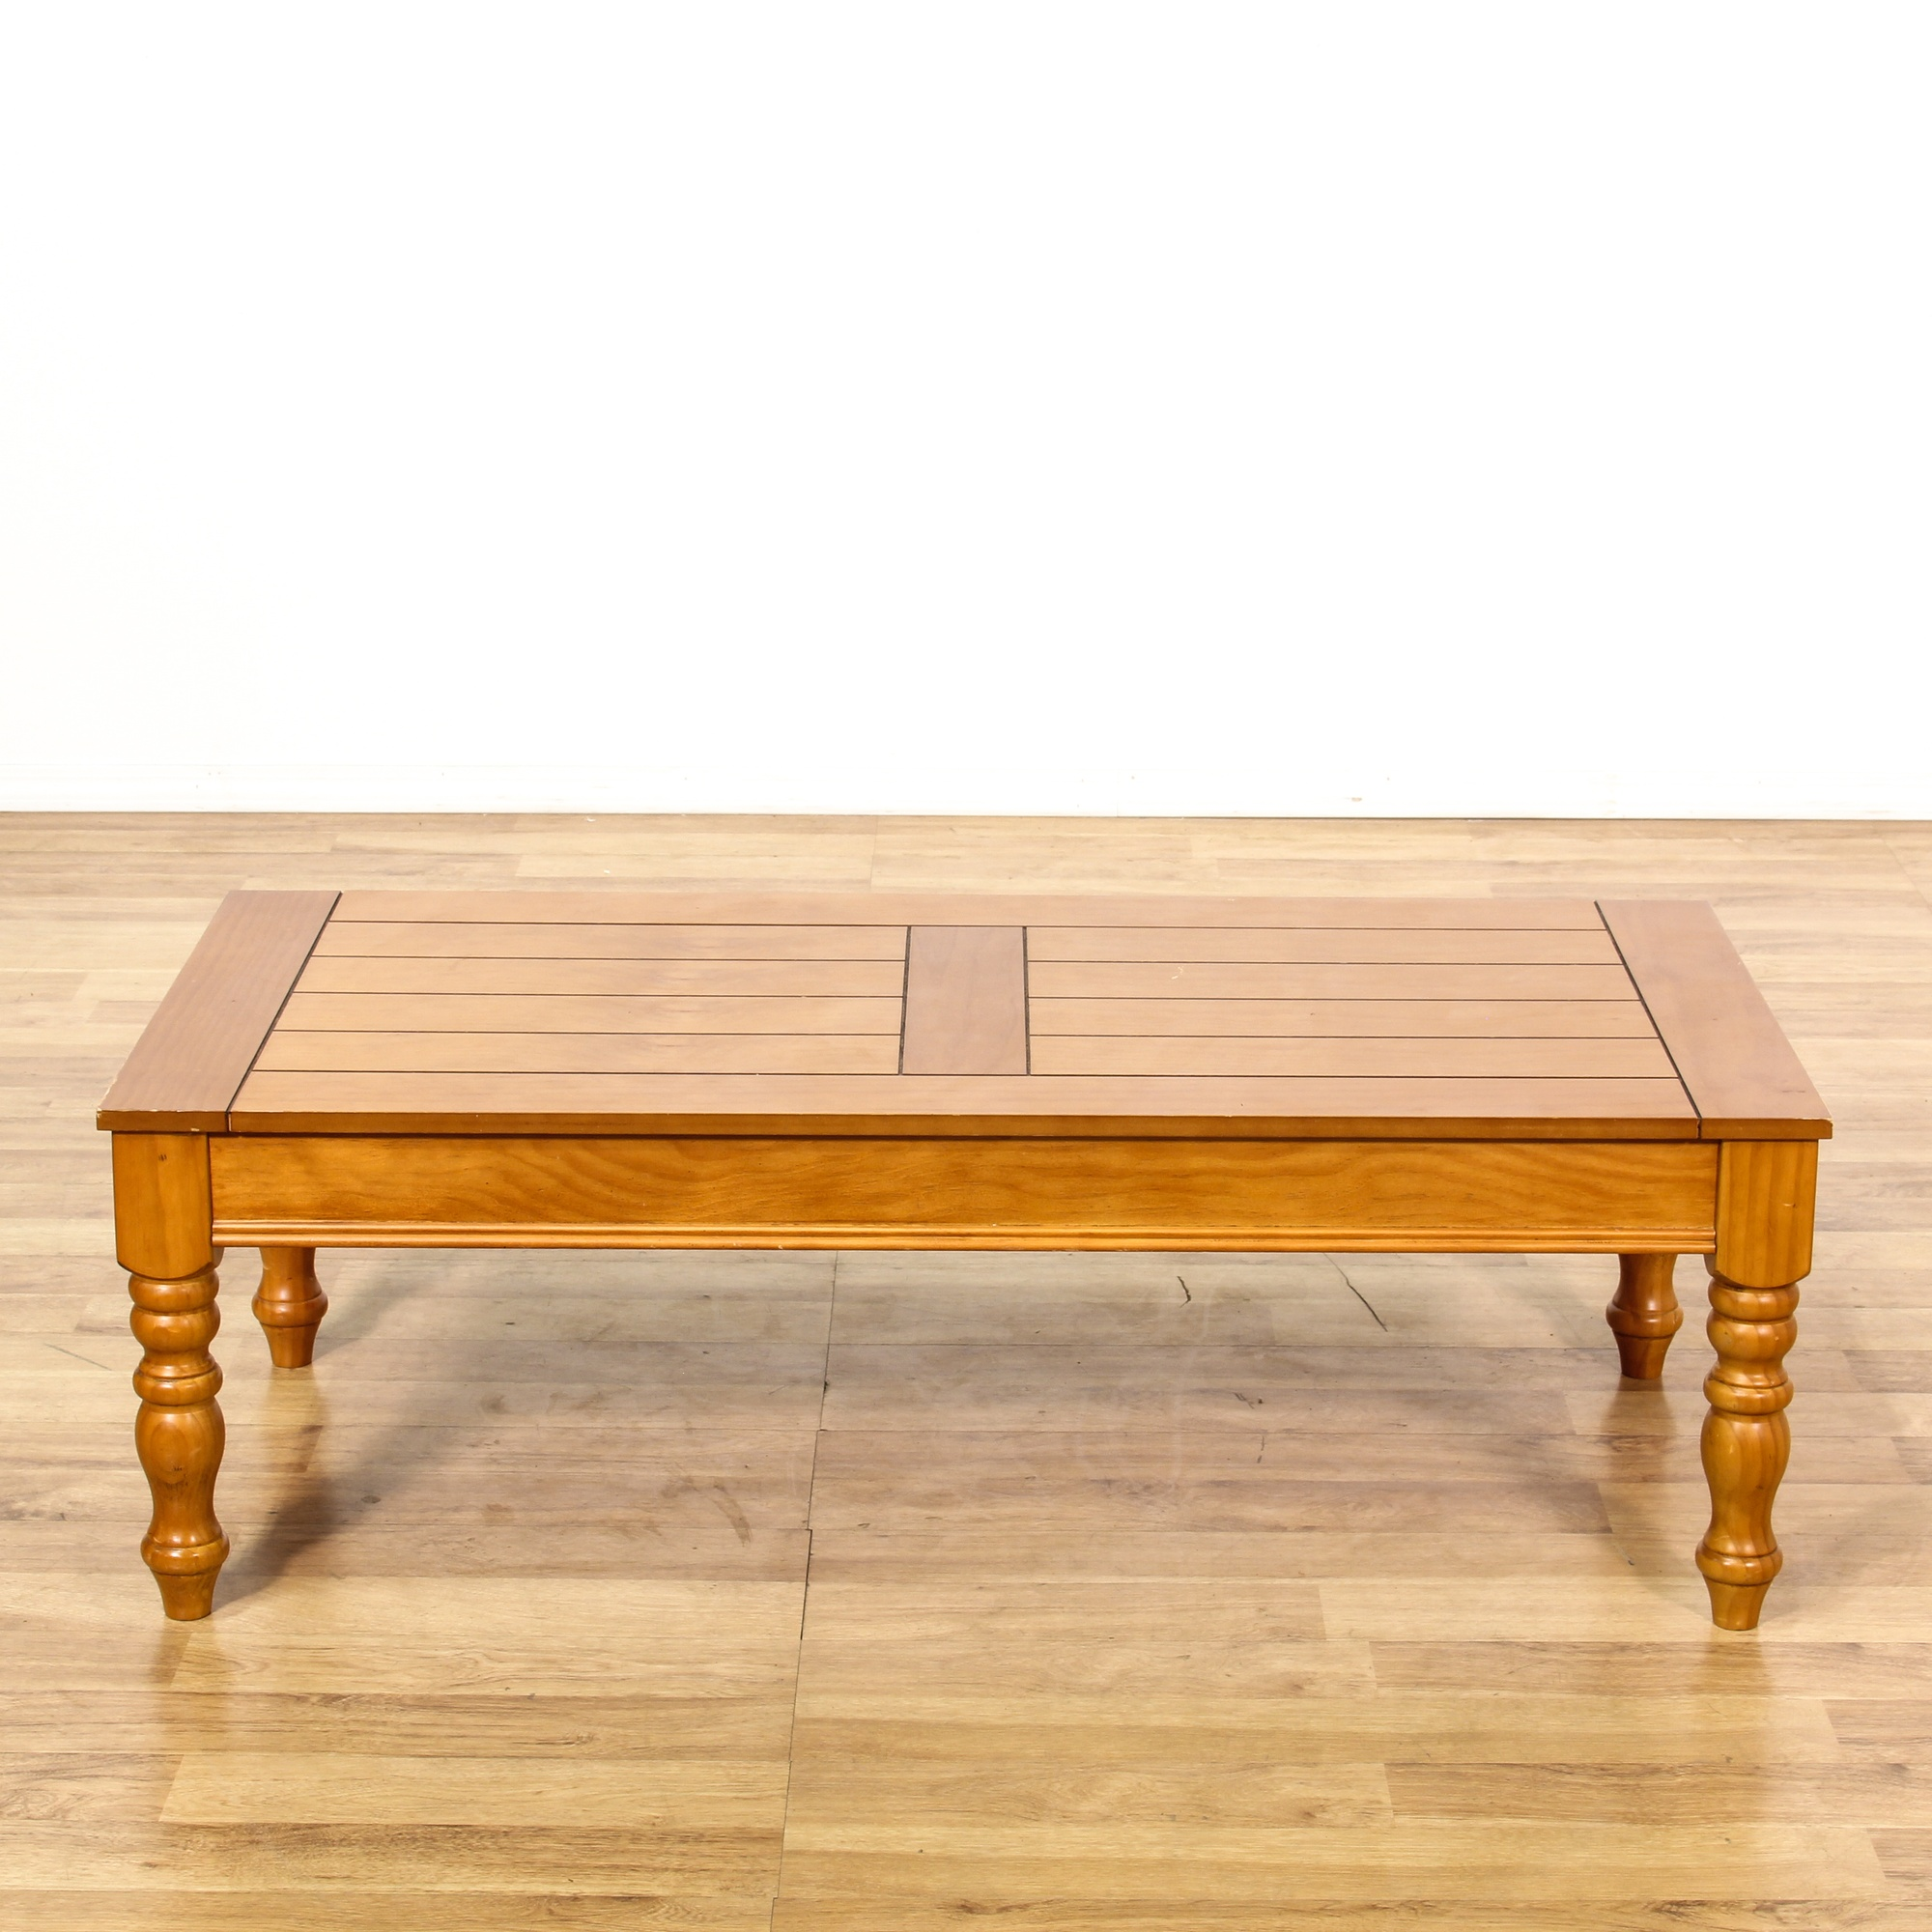 Pine Coffee Table With Turned Legs: Rustic Country Pine Stained Coffee Table 2